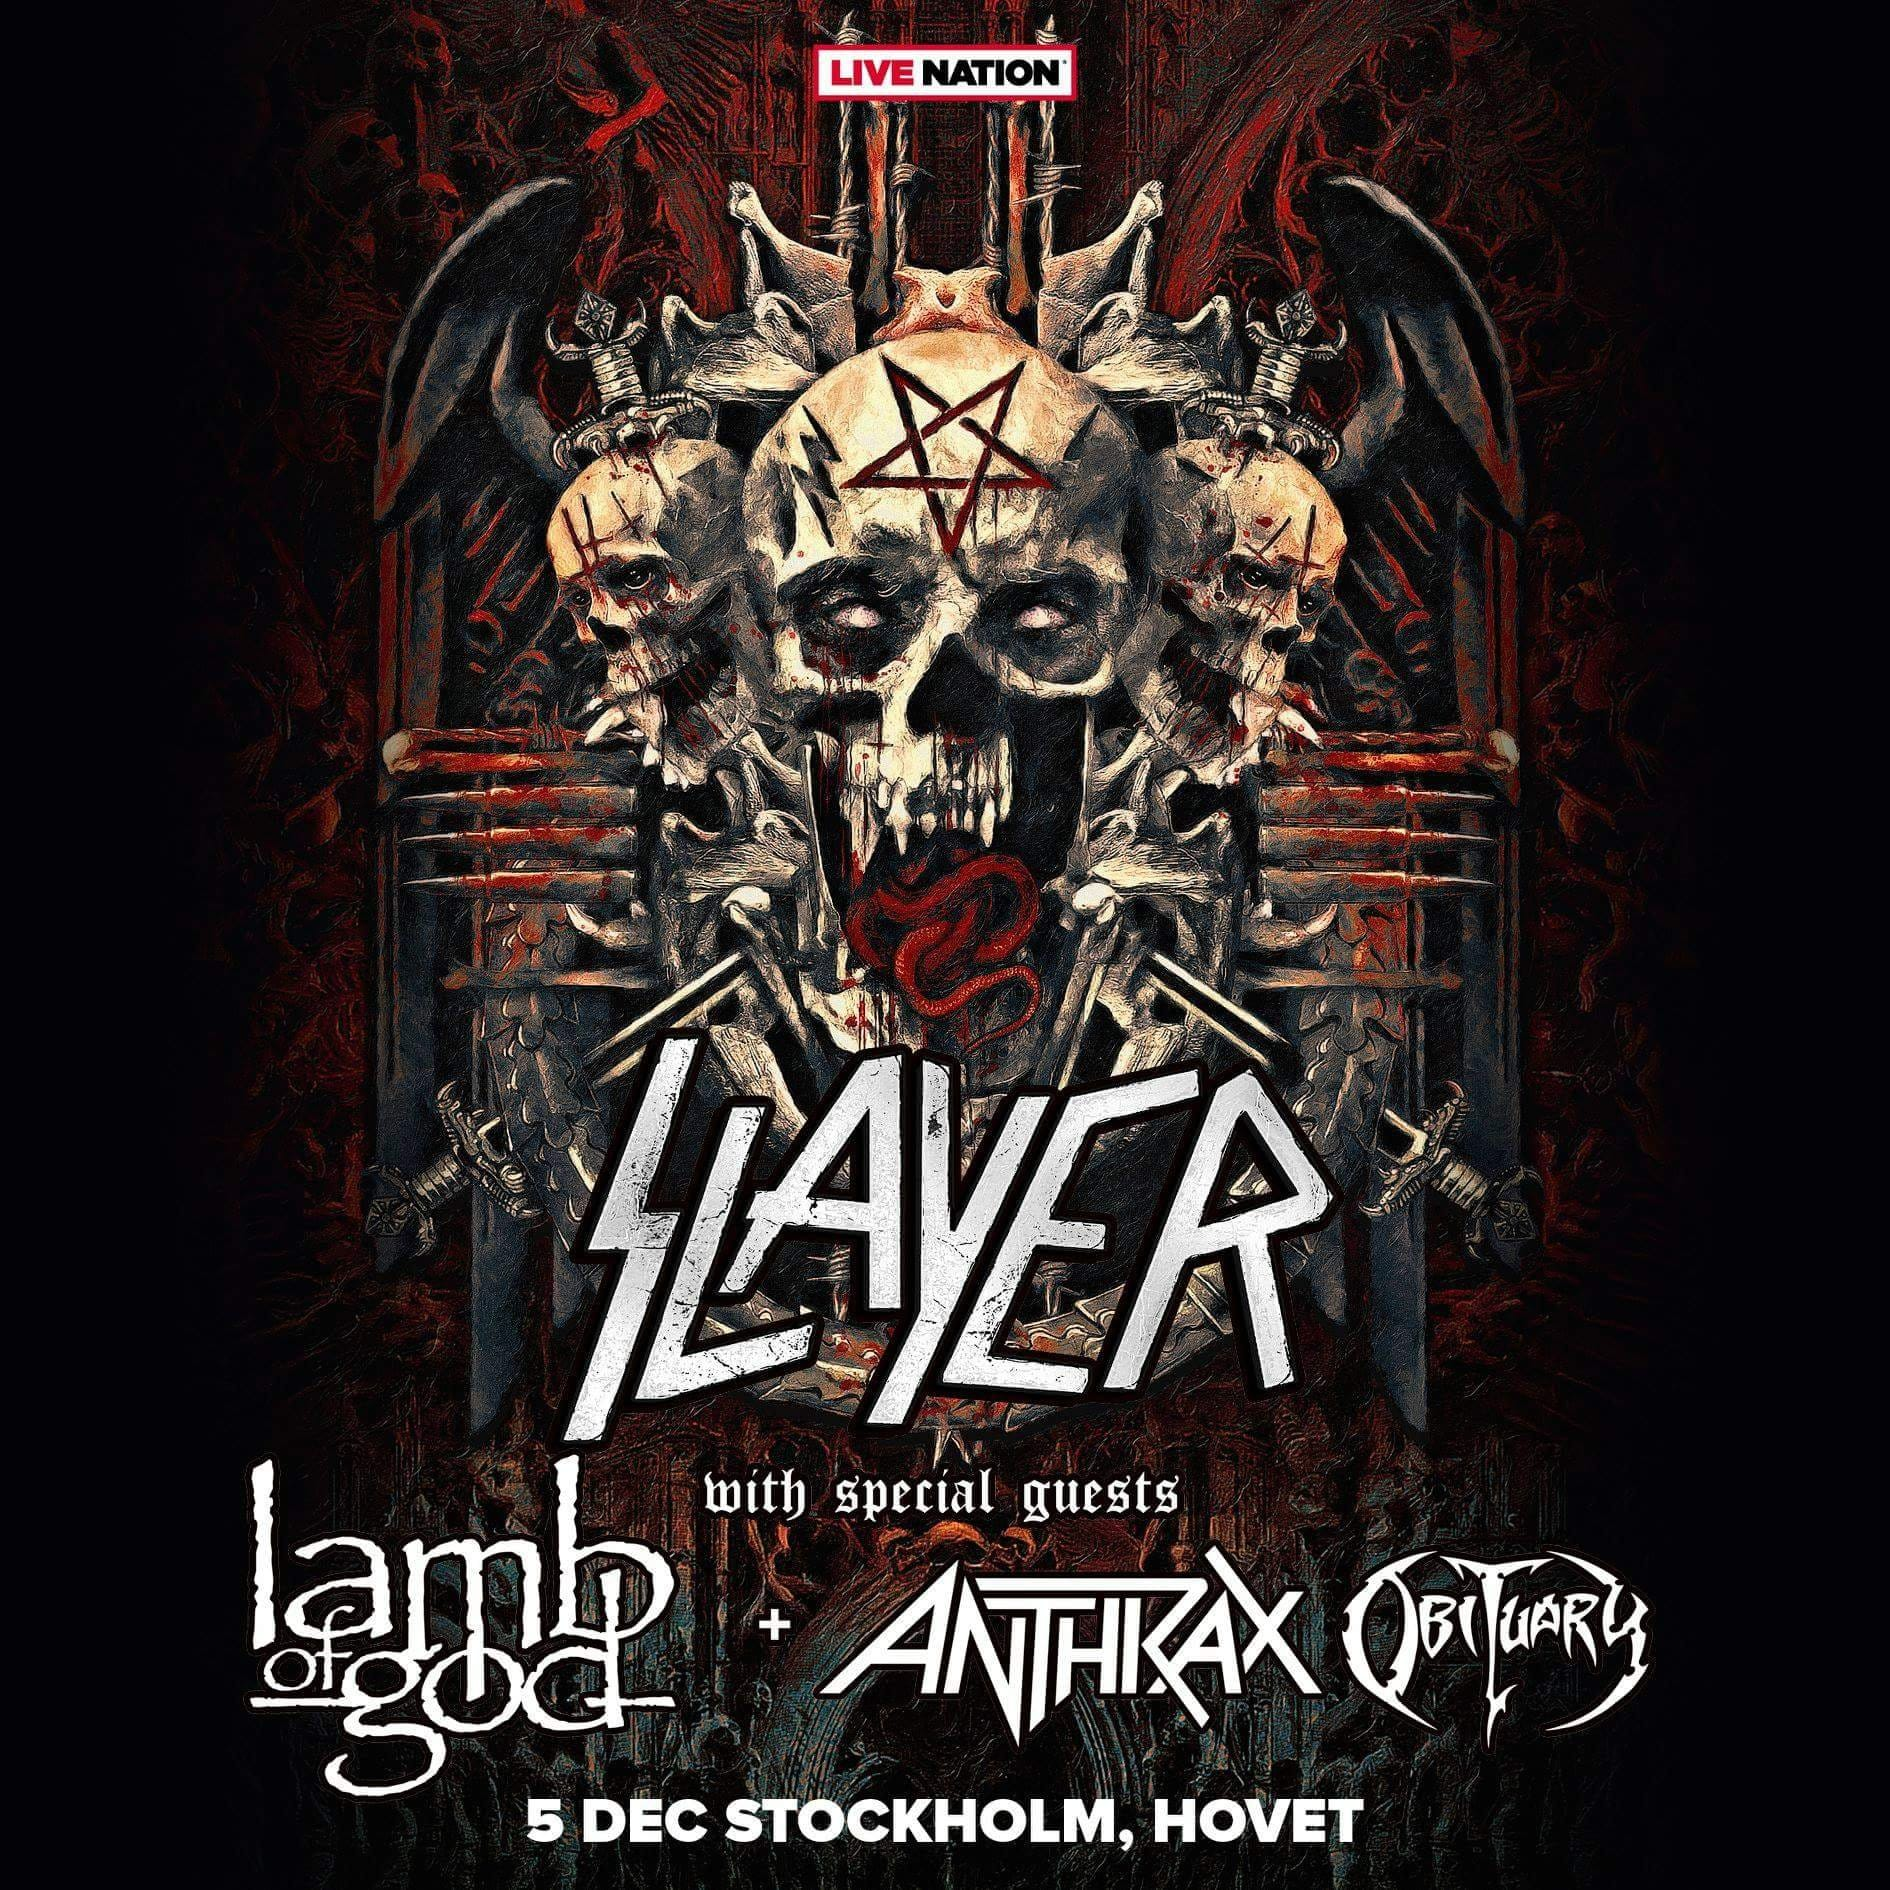 Slayer + Lamb of God + Anthrax m.fl.